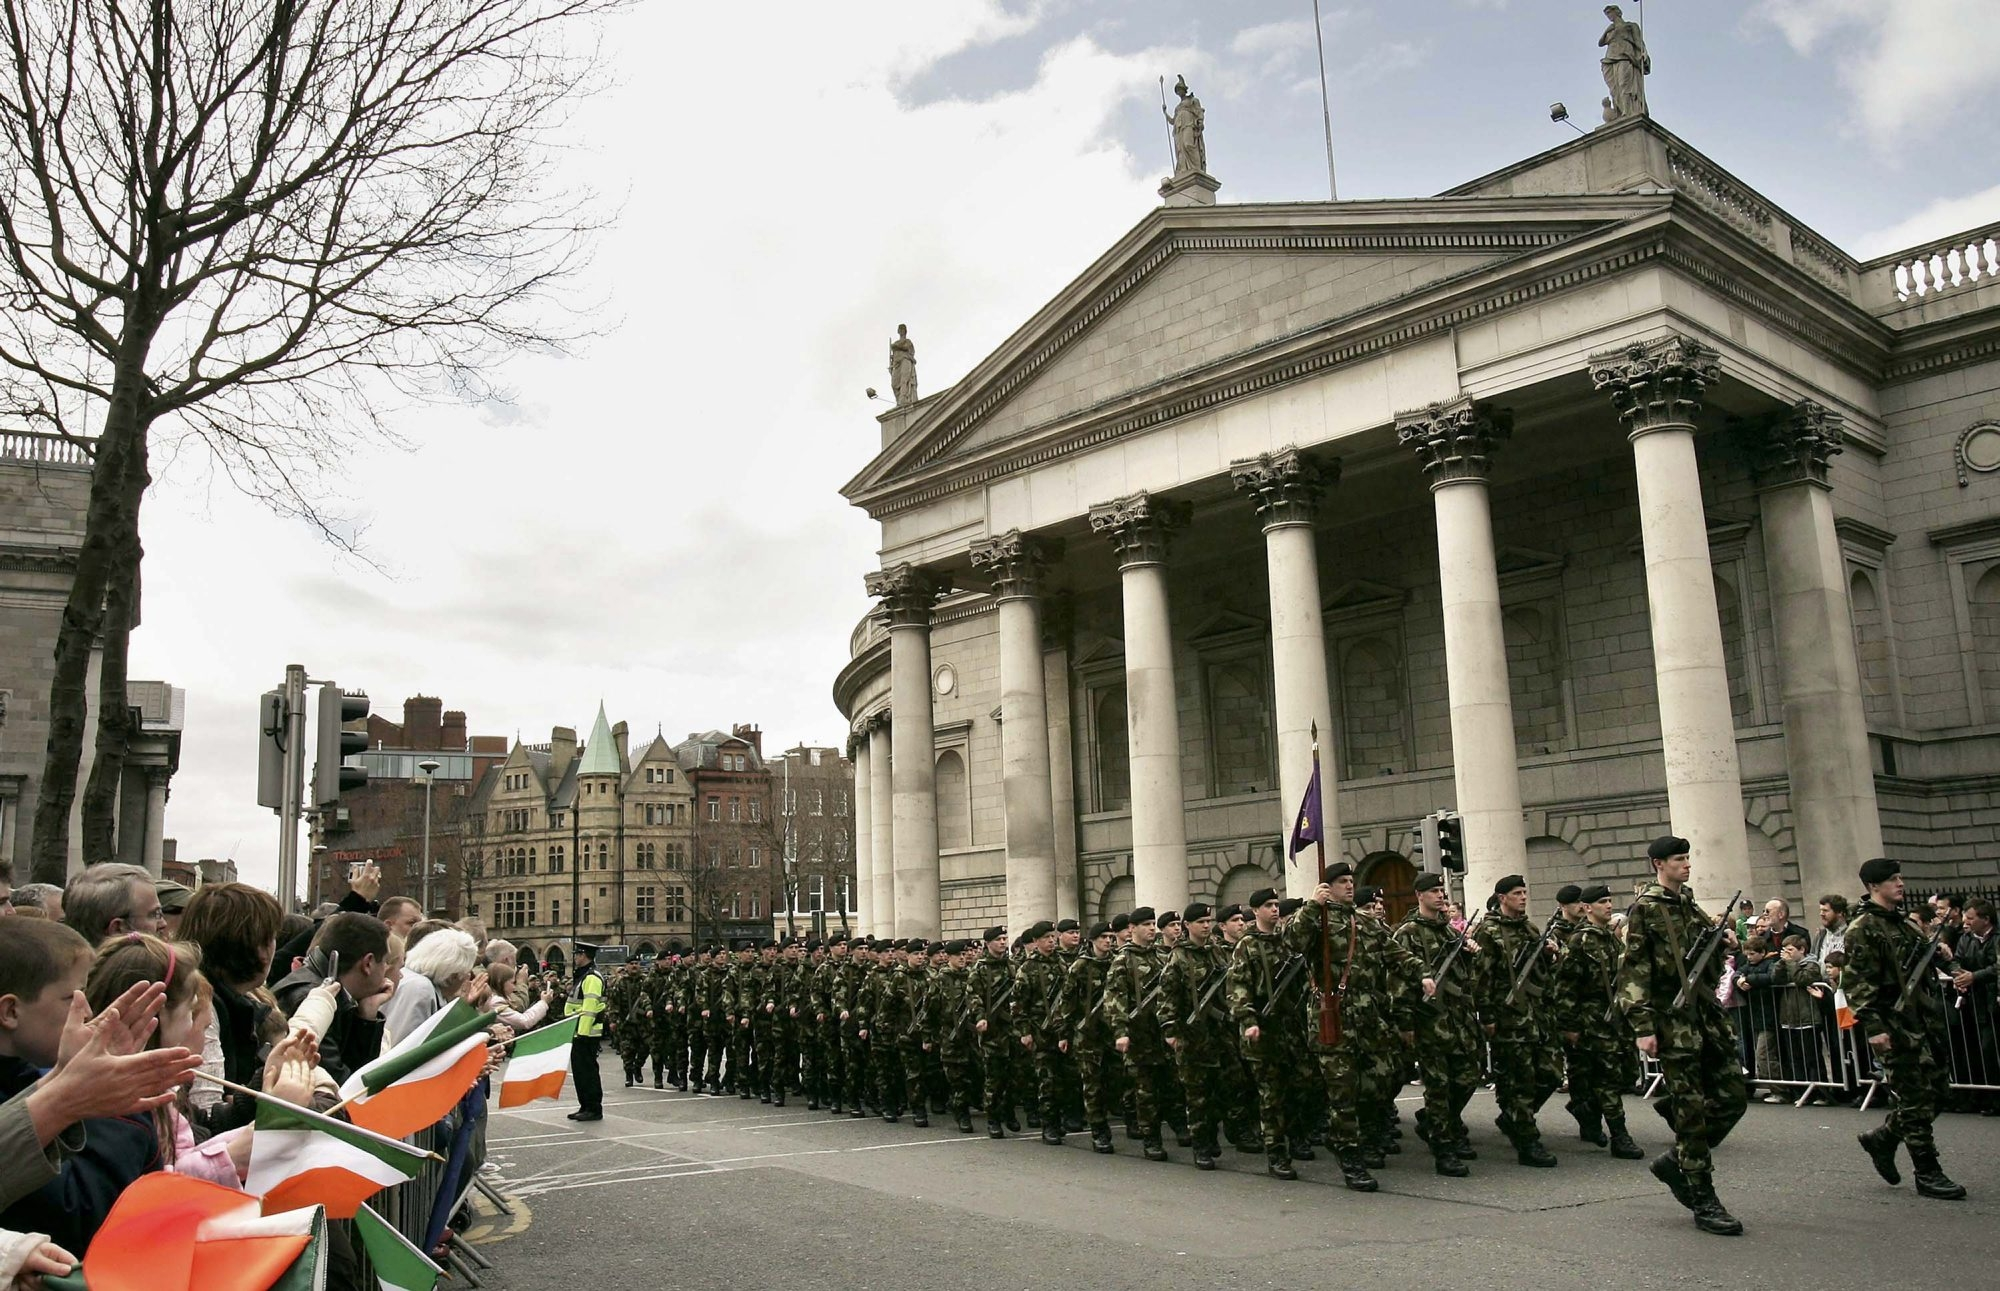 Irish Defence Force troops march in an Easter parade on April 16, 2006, in Dublin, Ireland, to commemmorate the 90th anniversary of the 1916 Easter Rising against British rule.